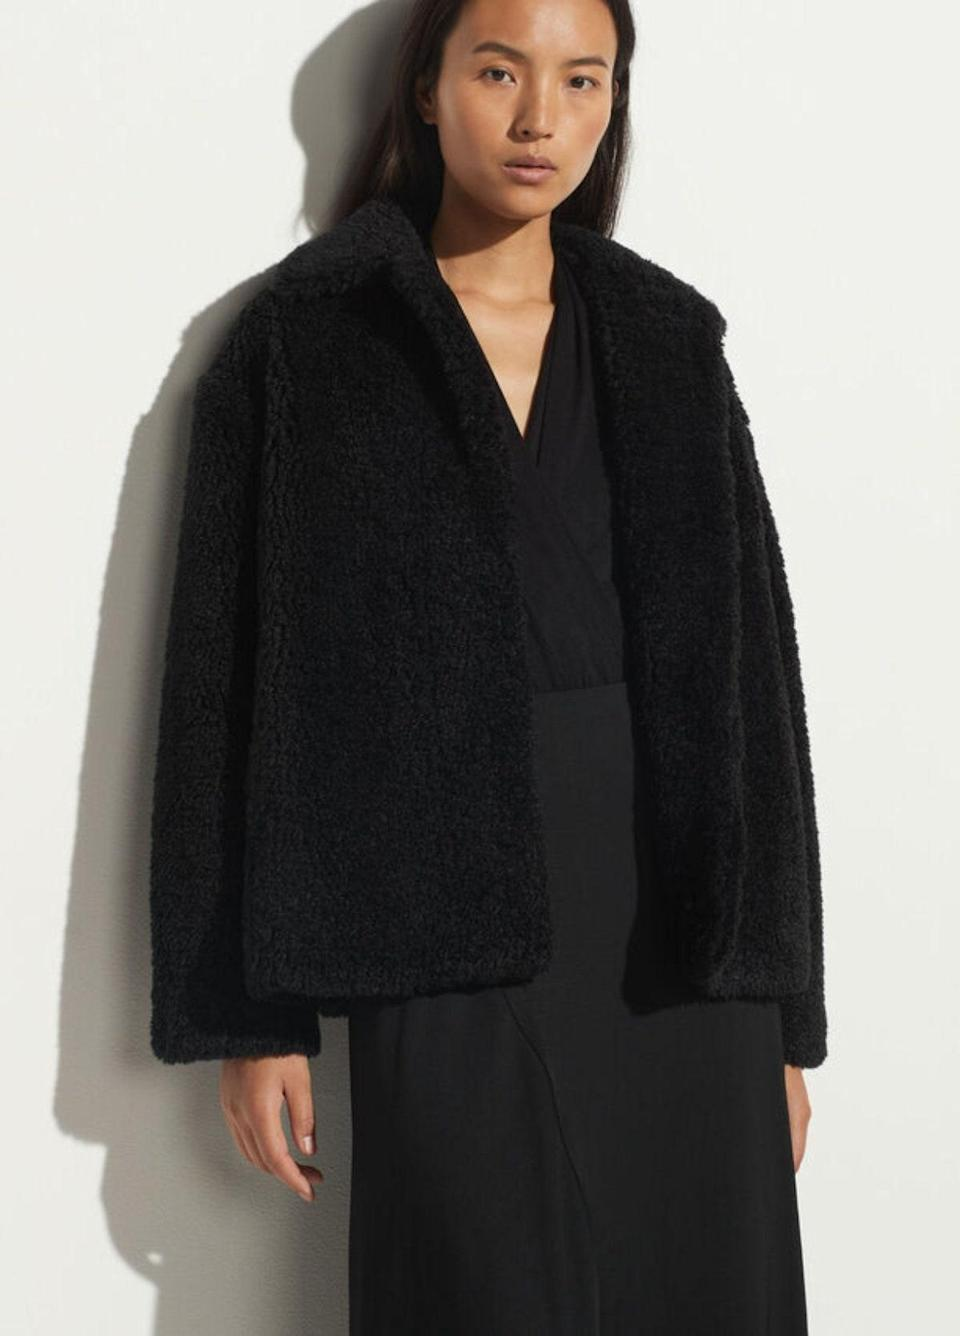 """Trust, this black faux-fur coat will only get better with wear. $495, Vince. <a href=""""https://www.vince.com/textured-faux-fur-jacket-V771291372.html"""" rel=""""nofollow noopener"""" target=""""_blank"""" data-ylk=""""slk:Get it now!"""" class=""""link rapid-noclick-resp"""">Get it now!</a>"""